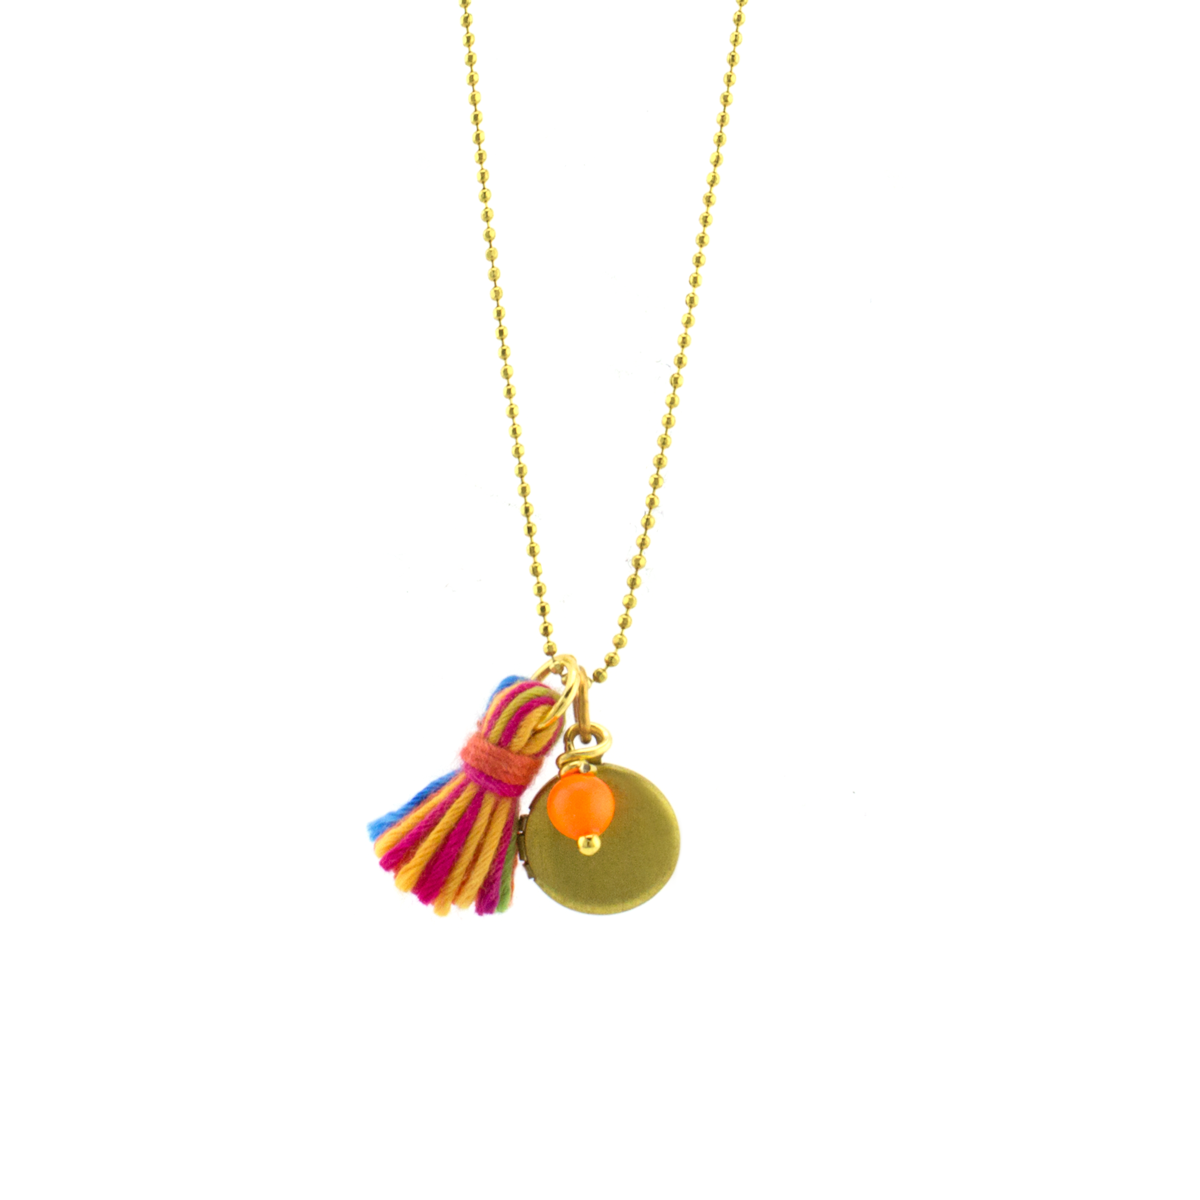 Lovely locket tassel necklace